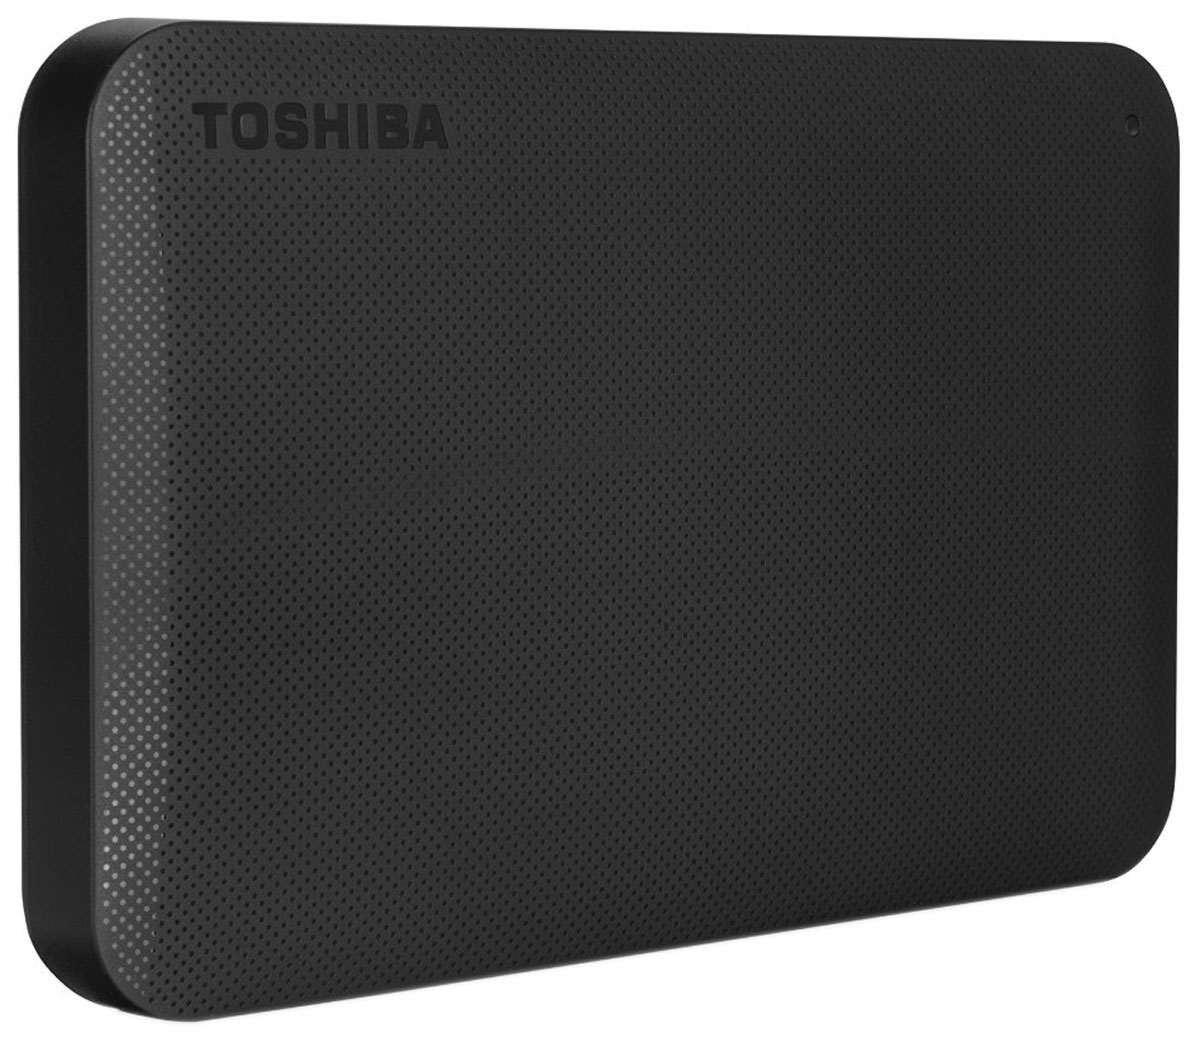 Zakazat.ru Toshiba Canvio Ready 3TB, Black внешний жесткий диск (HDTP230EK3CA)